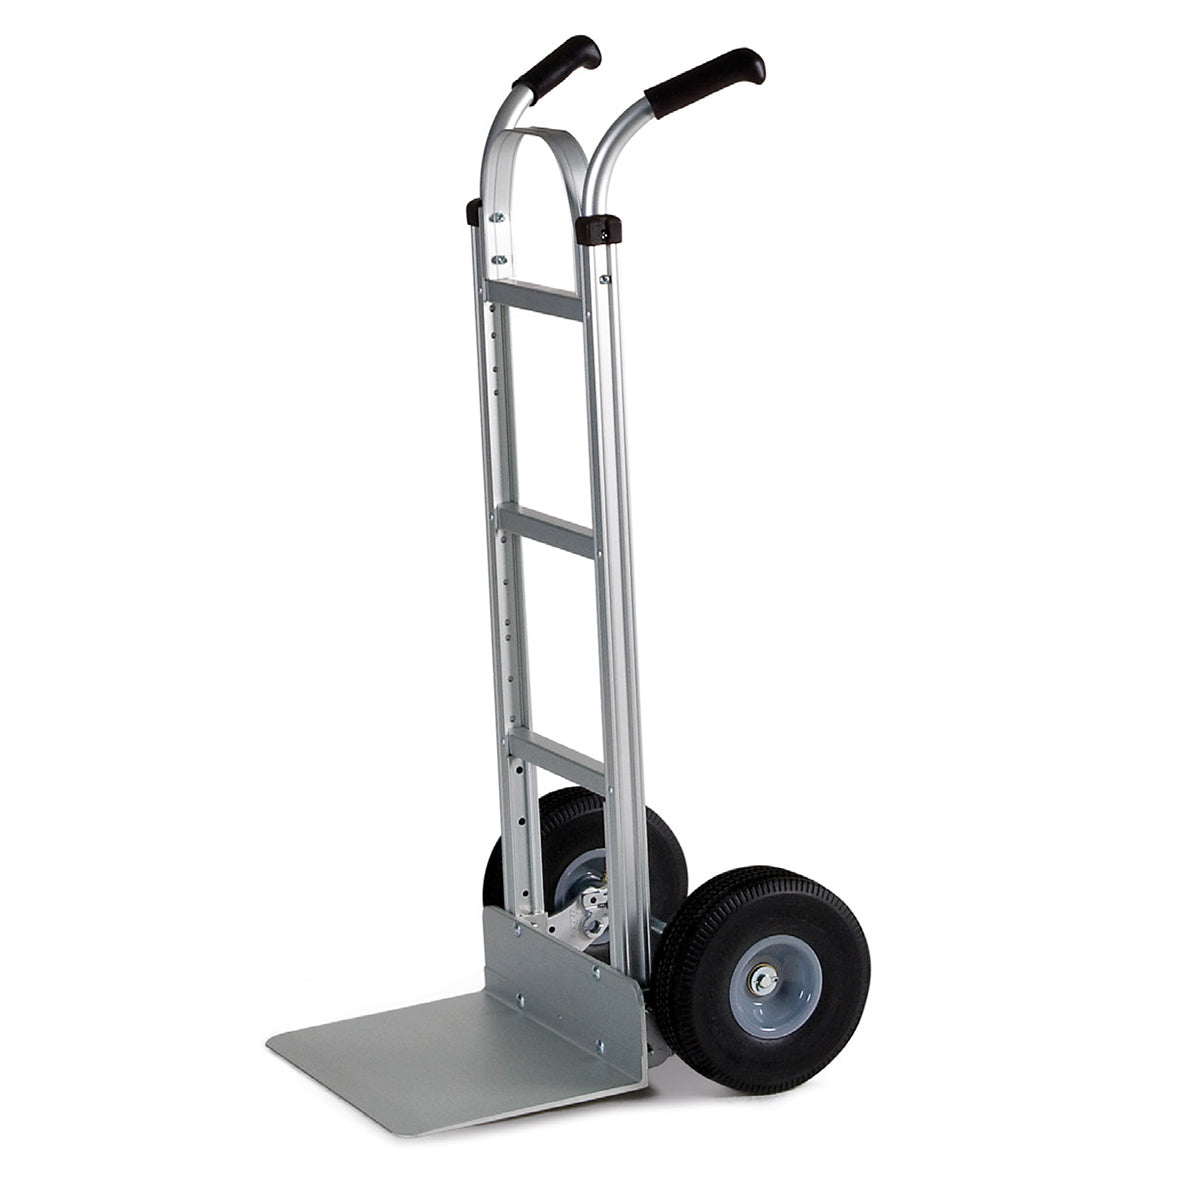 Stromboli Luggage Handling Trolley